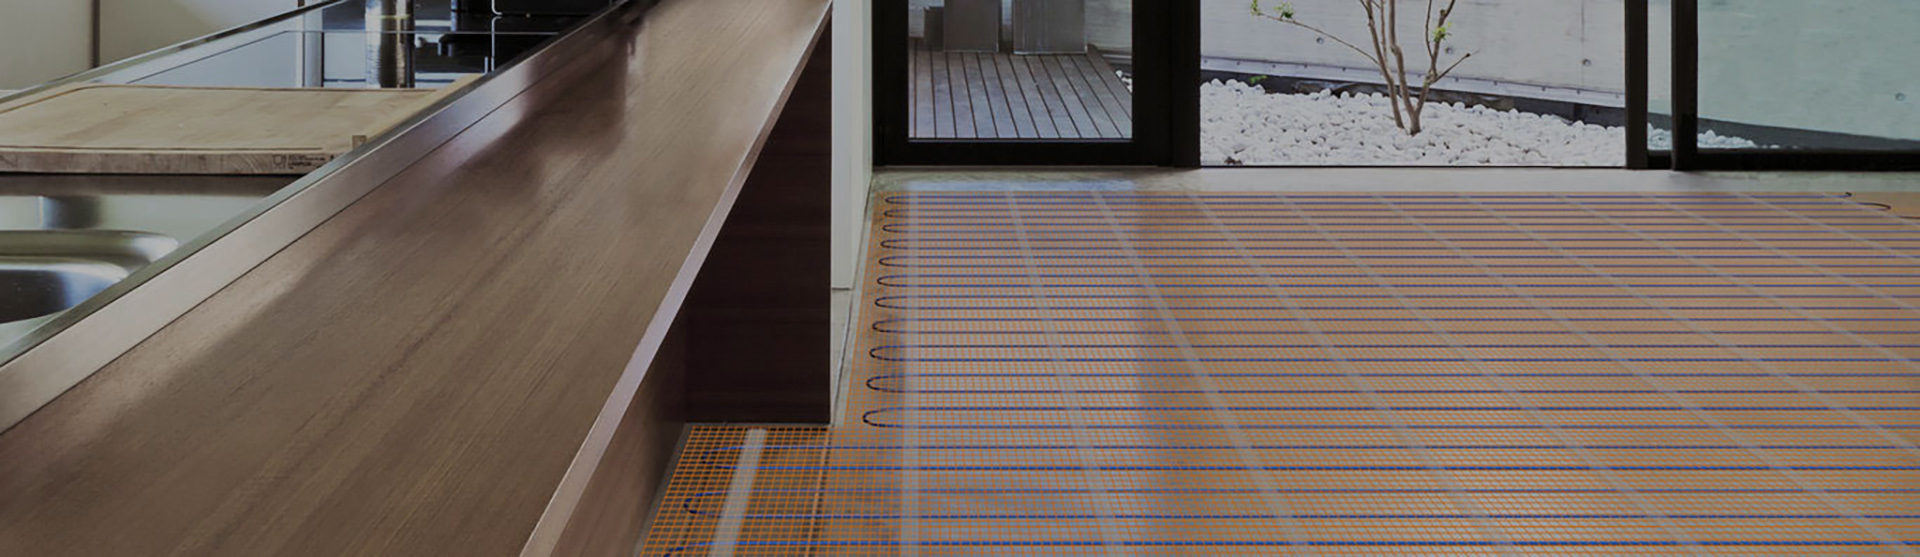 Radiant heated floors banner